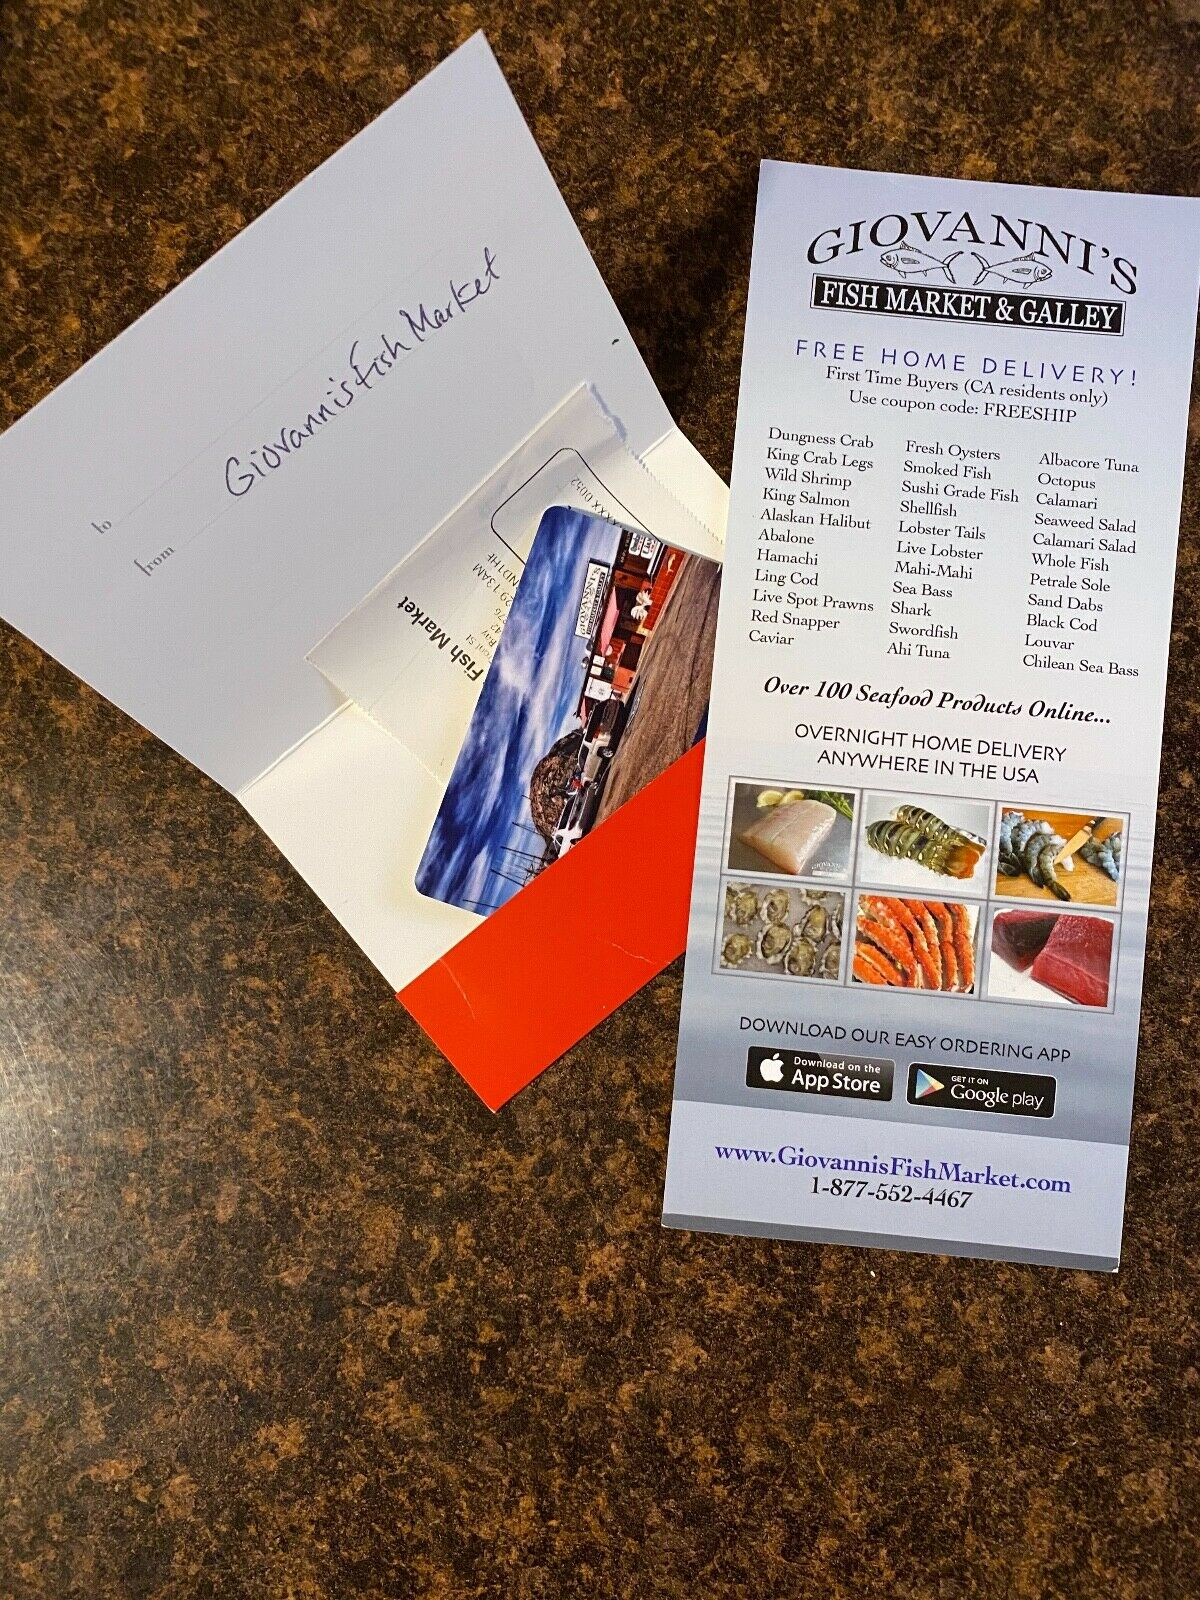 25 Gift Certificate To Giovanni s Fish Market And Gallery - $20.00